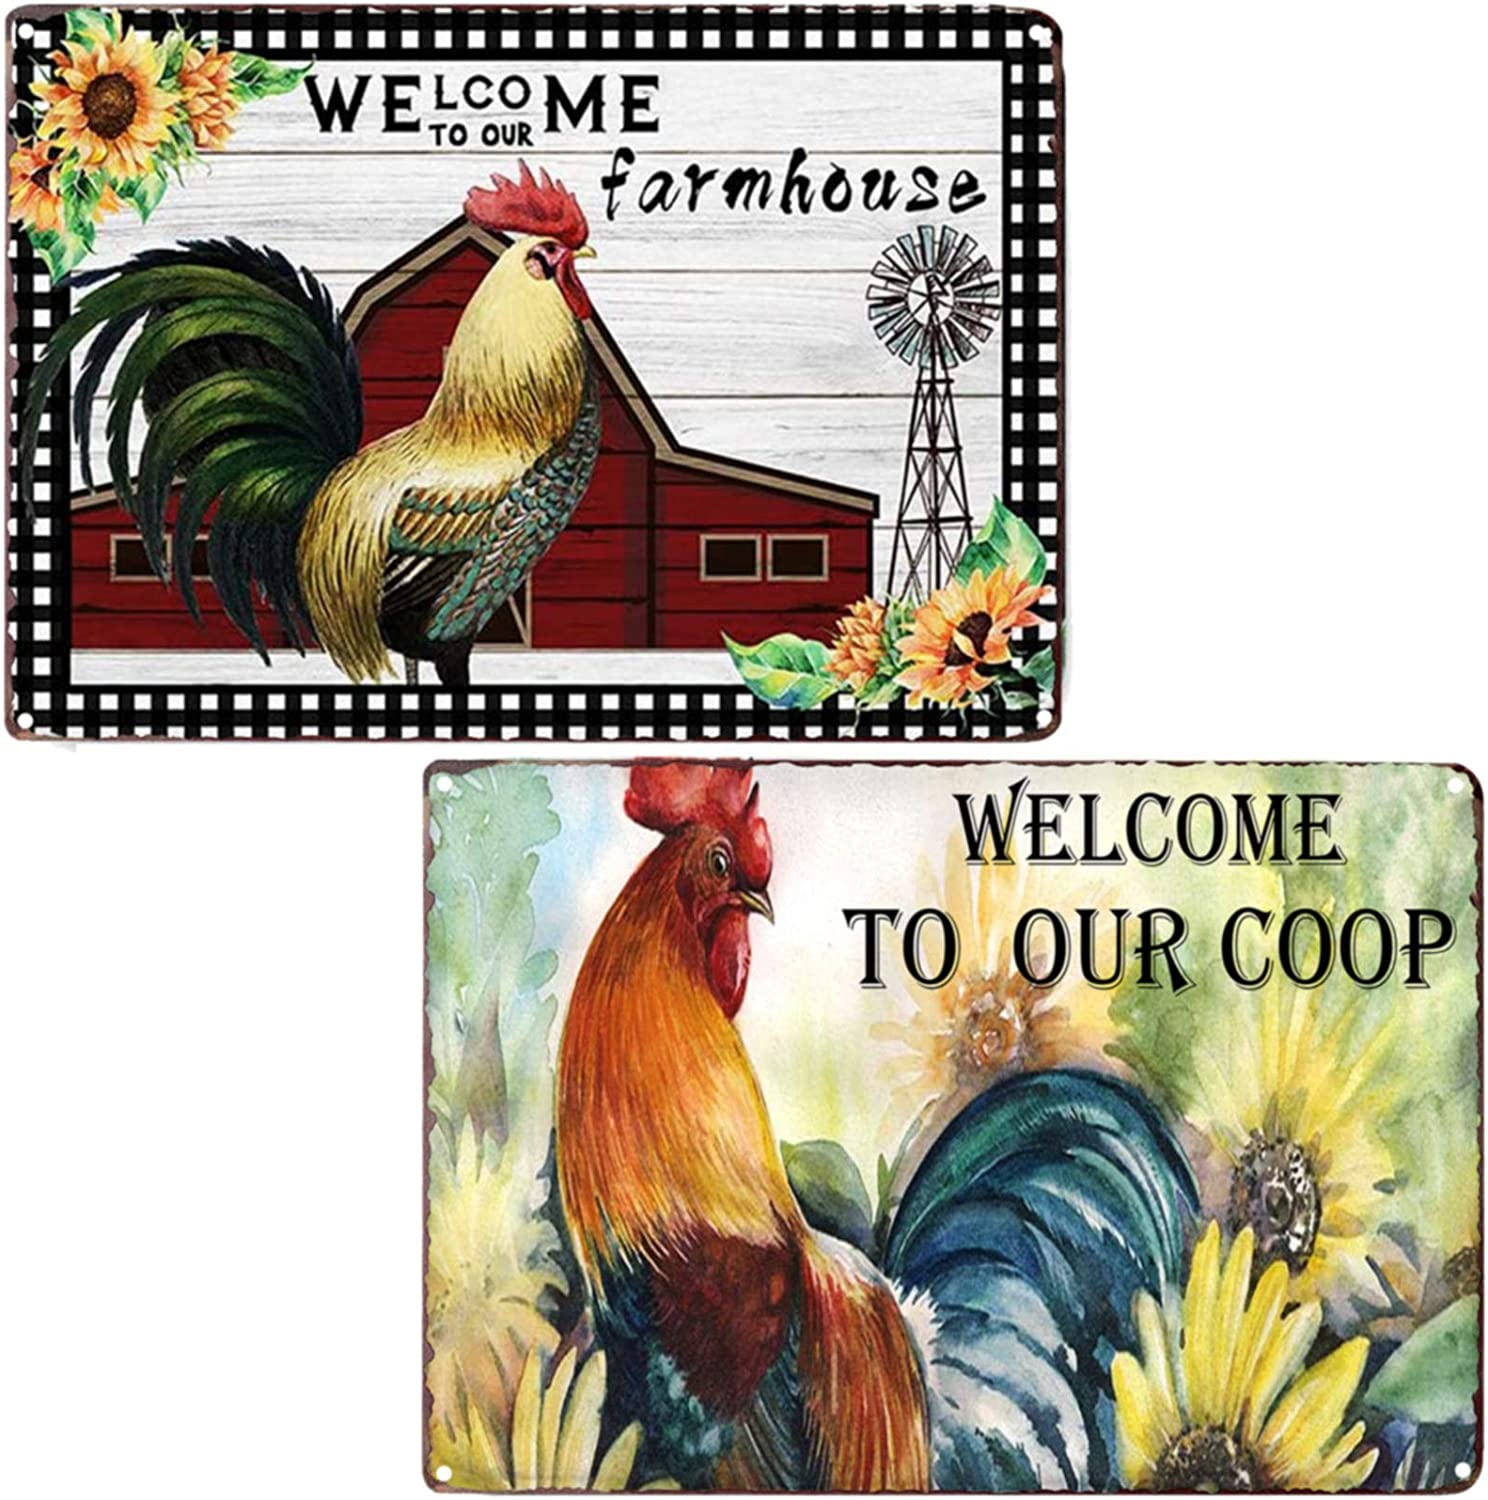 TISOSO Welcome to Our Farmhouse Coop Funny Chicken Sign Retro Vintage Metal Tin Signs Wall Plaque Farm House Country Home Decor 2Pcs-8X12Inch